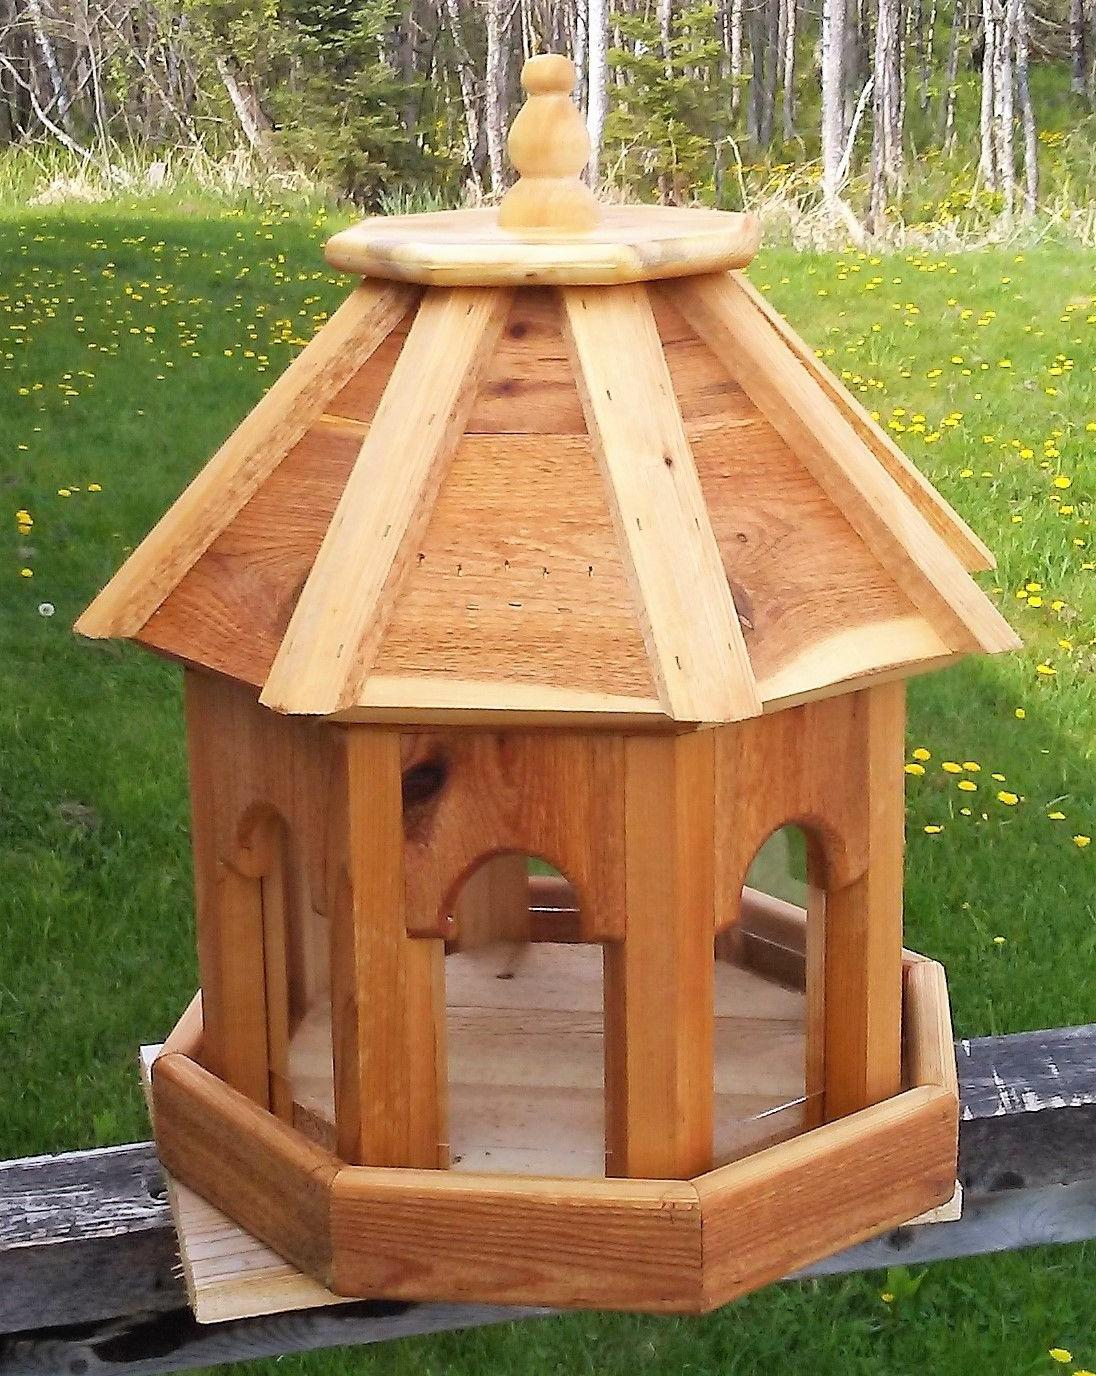 Very large wood gazebo style feeder, #RS1 TBNUP